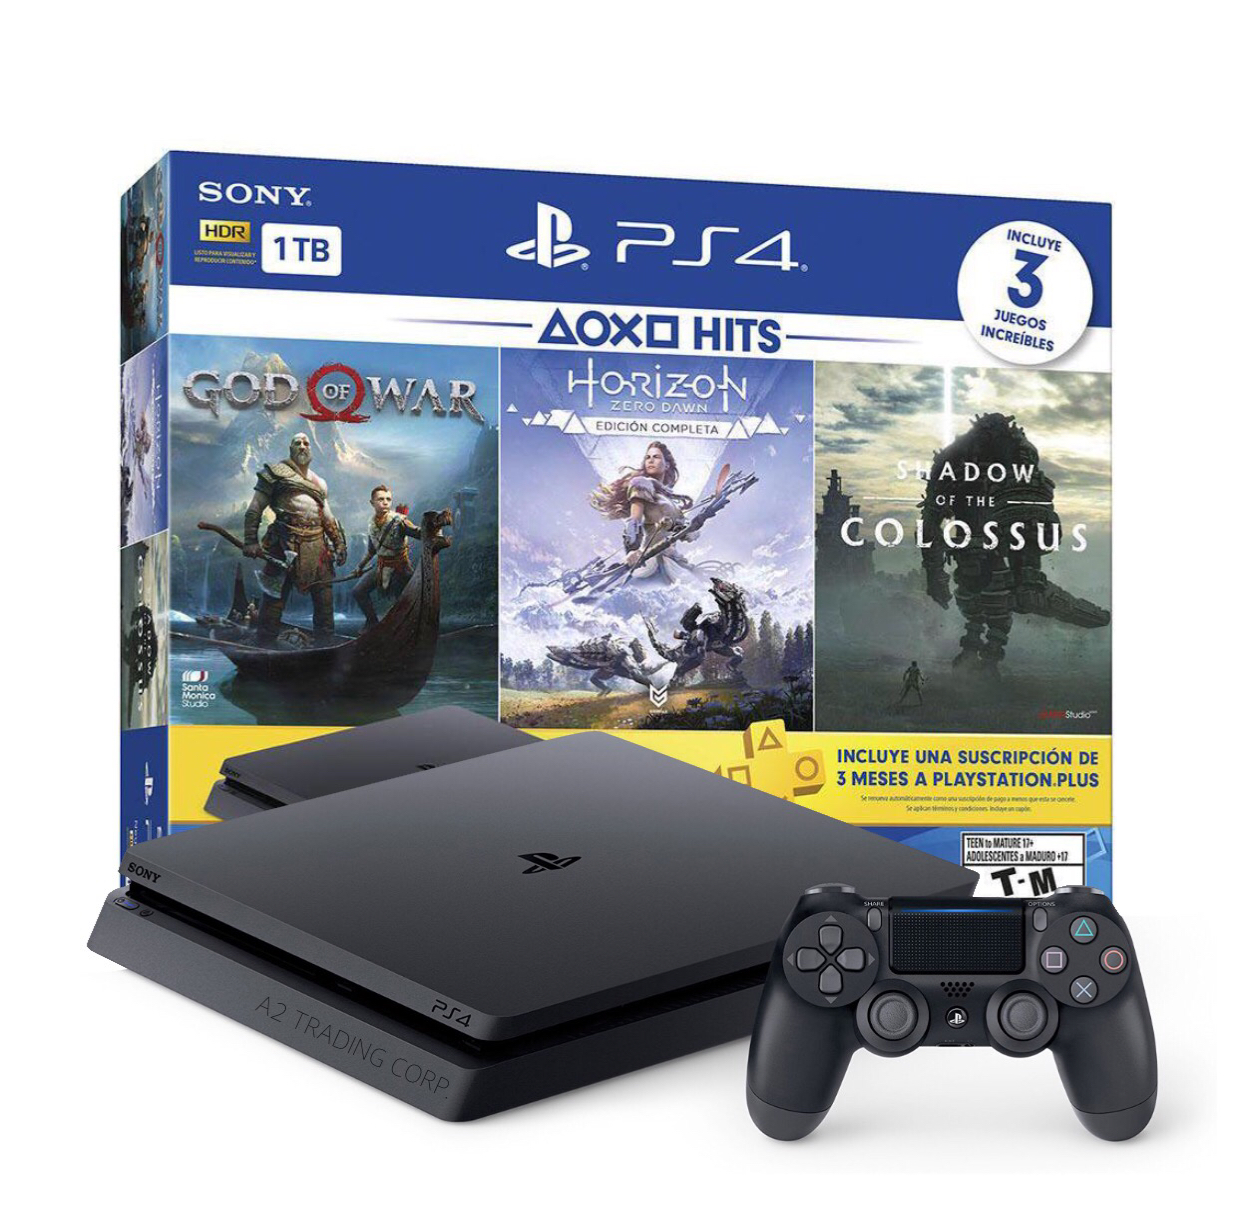 *NEW* Sony PlayStation 4 Slim 1TB Hits 4 Bundle with 3 Games, and more!